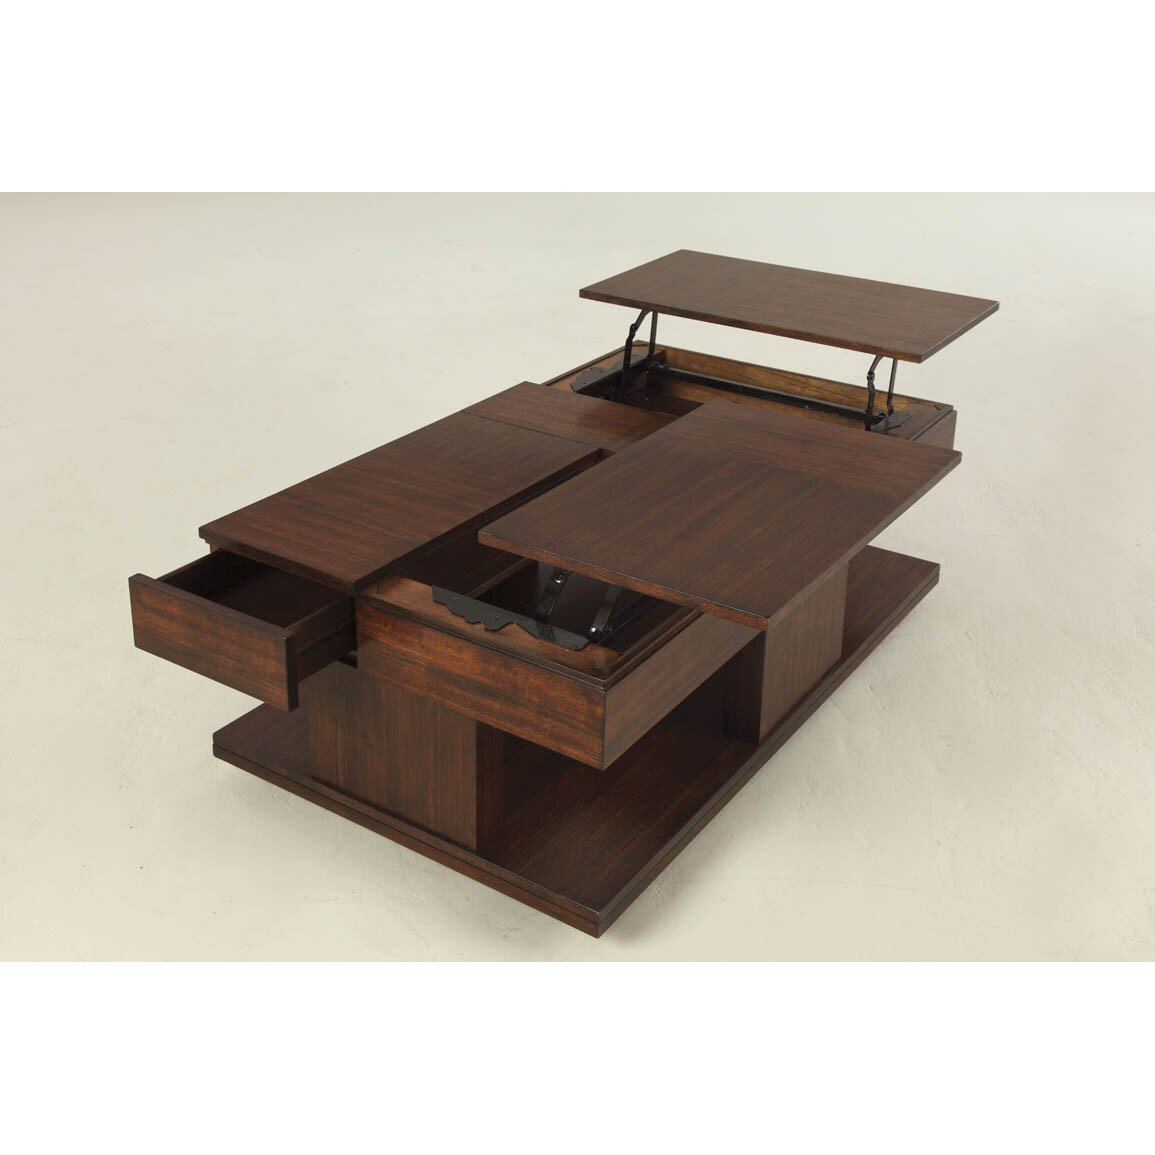 Darby home co dail coffee table with double lift top reviews wayfair Lifting top coffee table